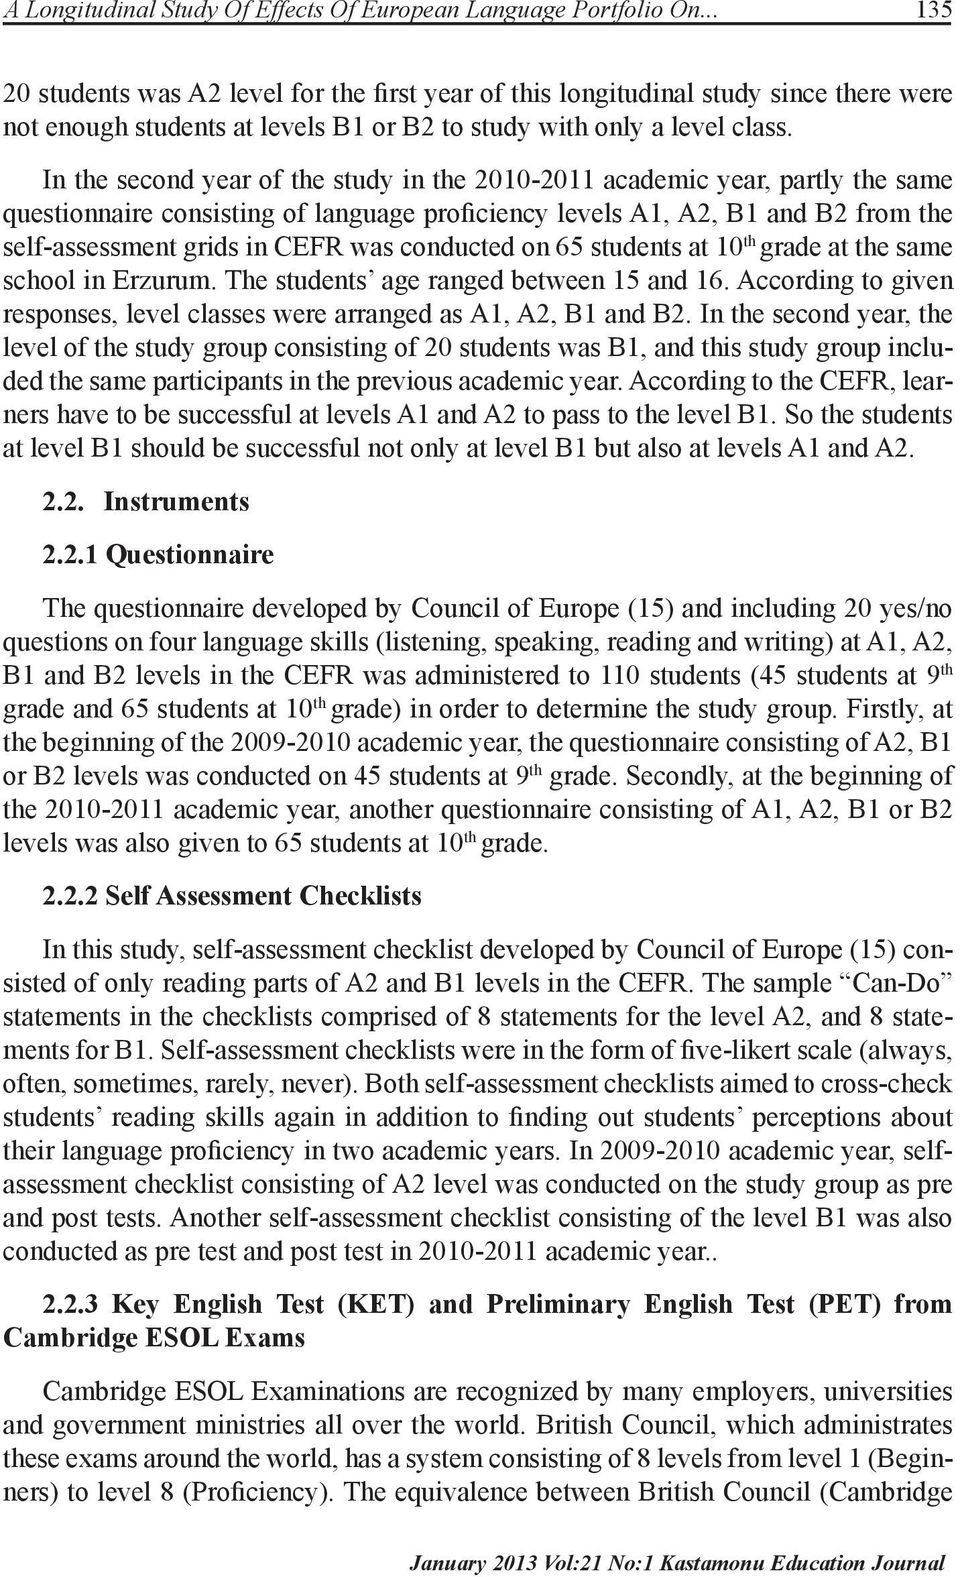 In the second year of the study in the 2010-2011 academic year, partly the same questionnaire consisting of language proficiency levels A1, A2, B1 and B2 from the self-assessment grids in CEFR was